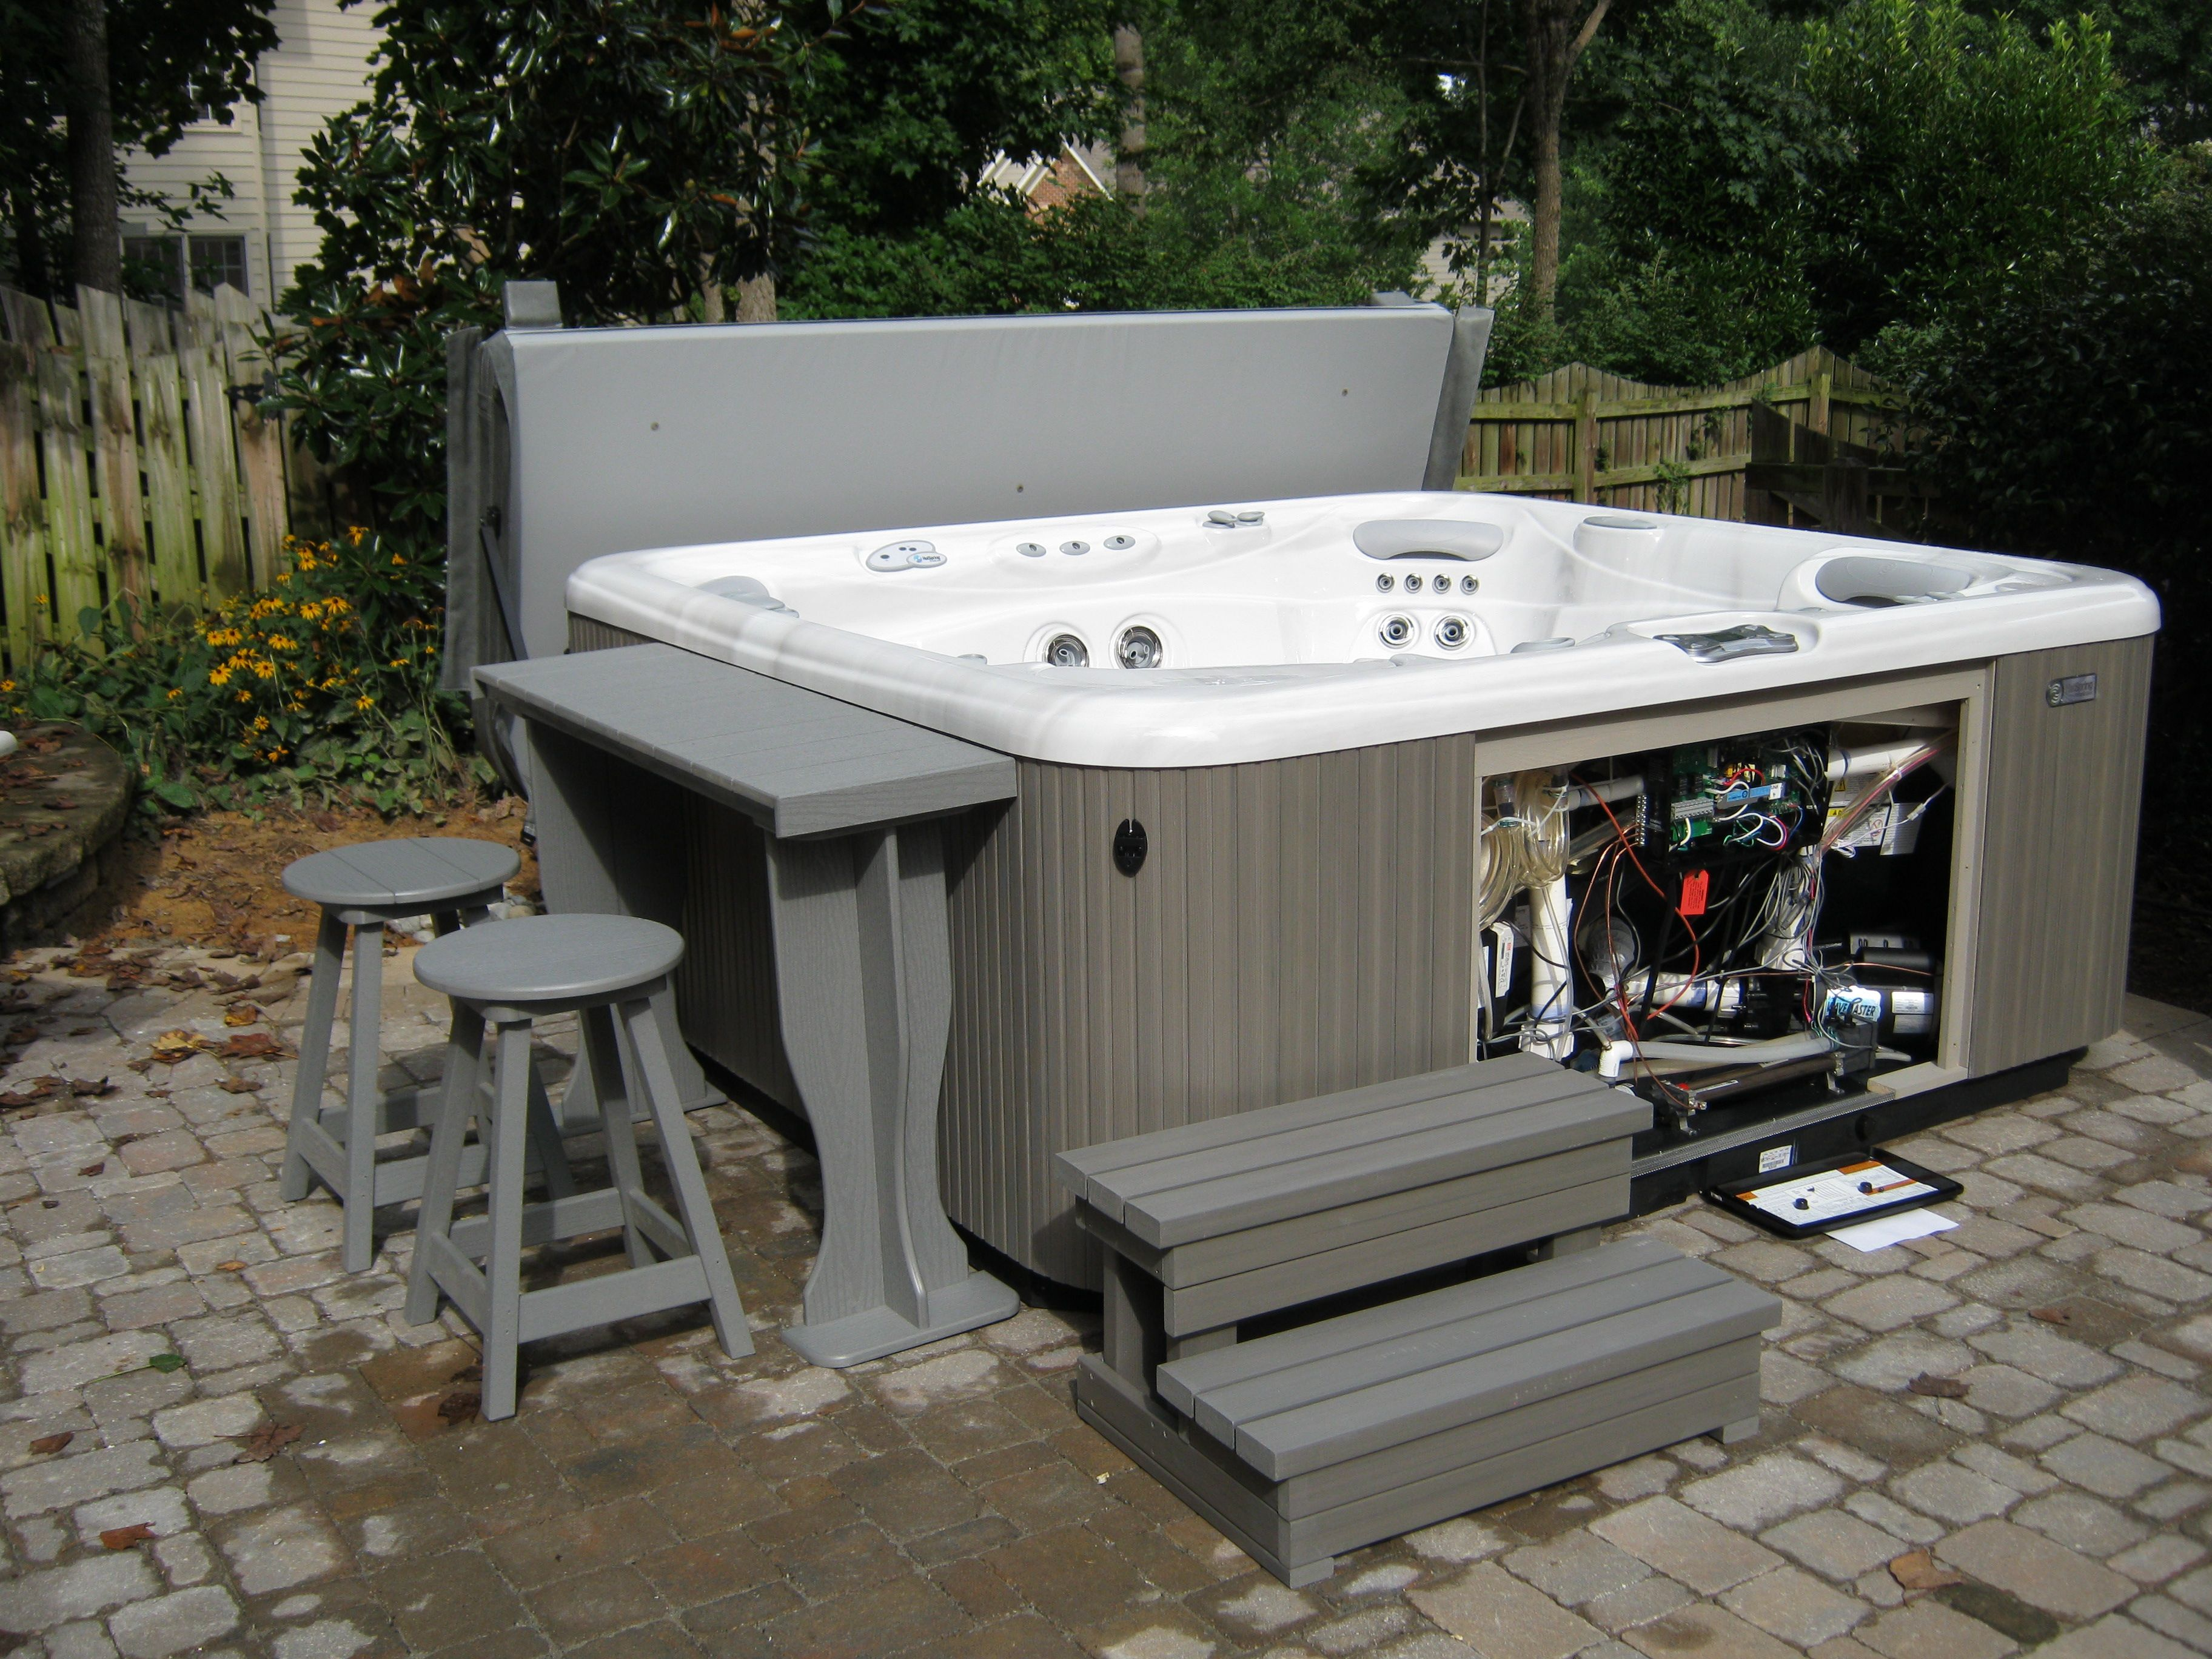 Seriously cool Hot Spring Envoy installed with A&B Accessories Bar